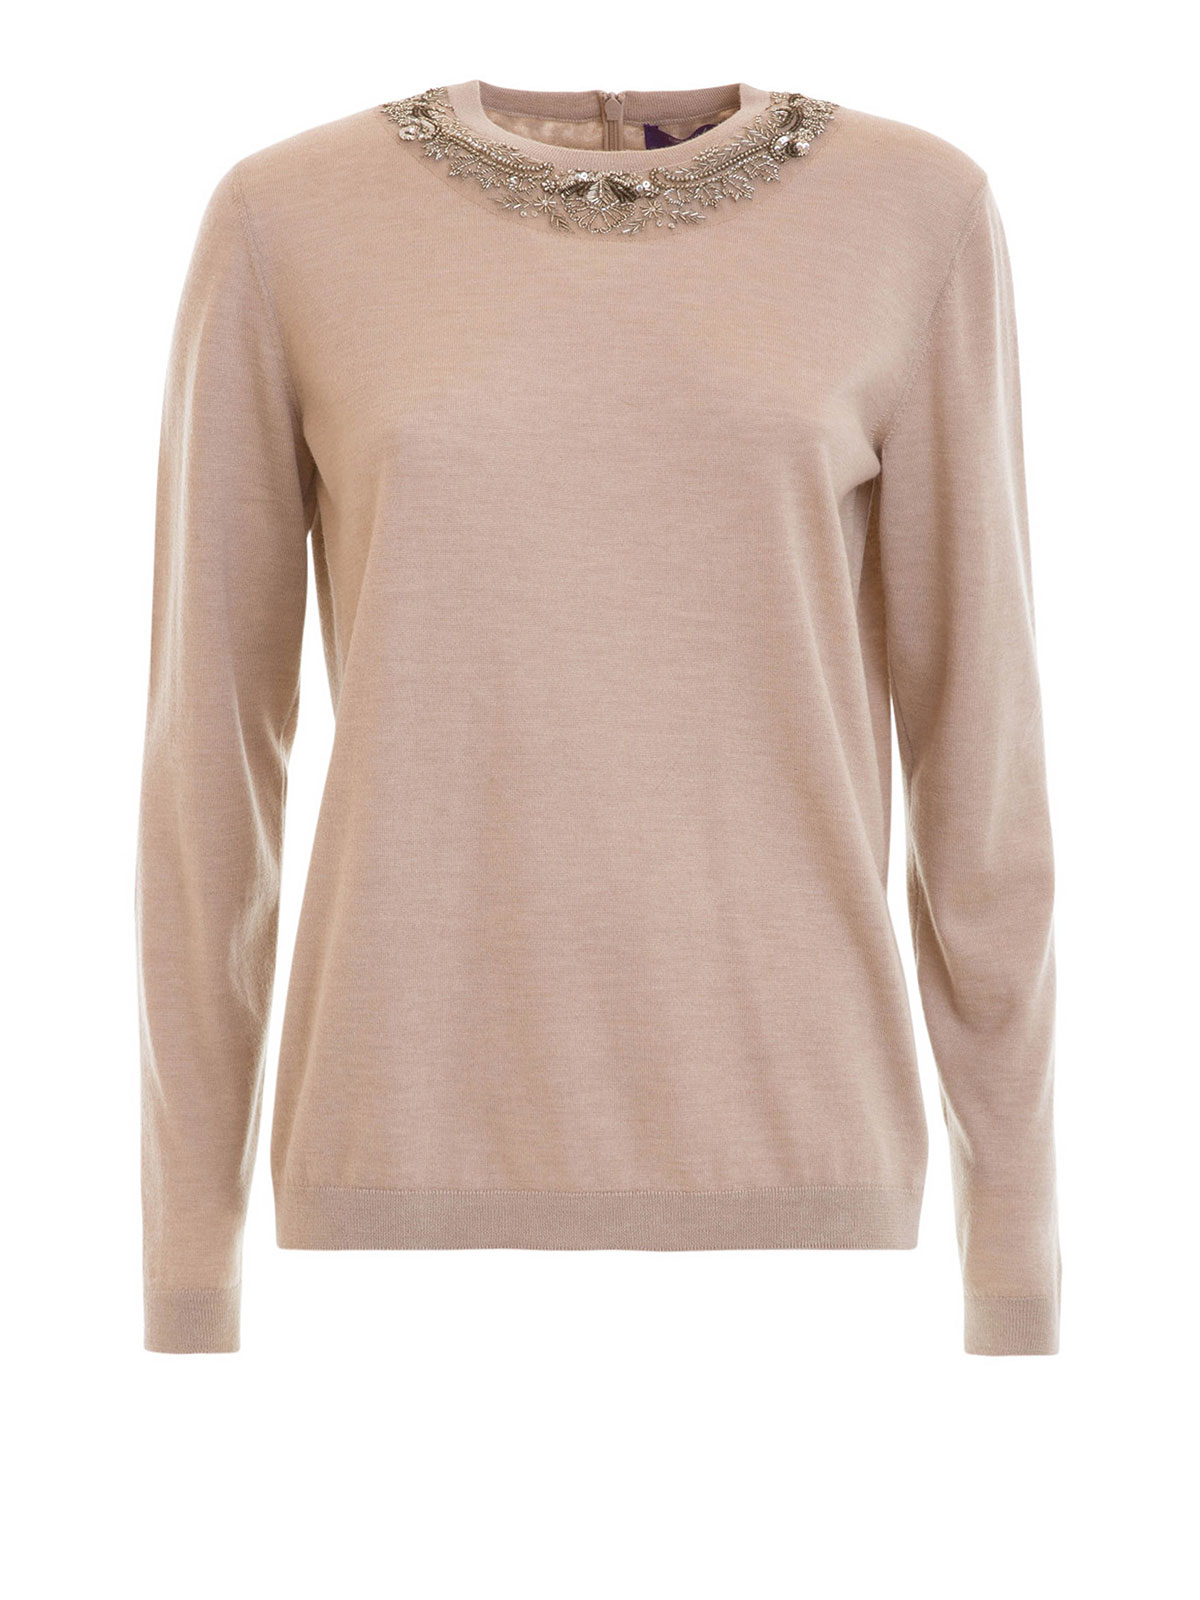 30c3131c91b Ralph Lauren - Pull Col Rond Beige Pour Femme - Pull col rond ...